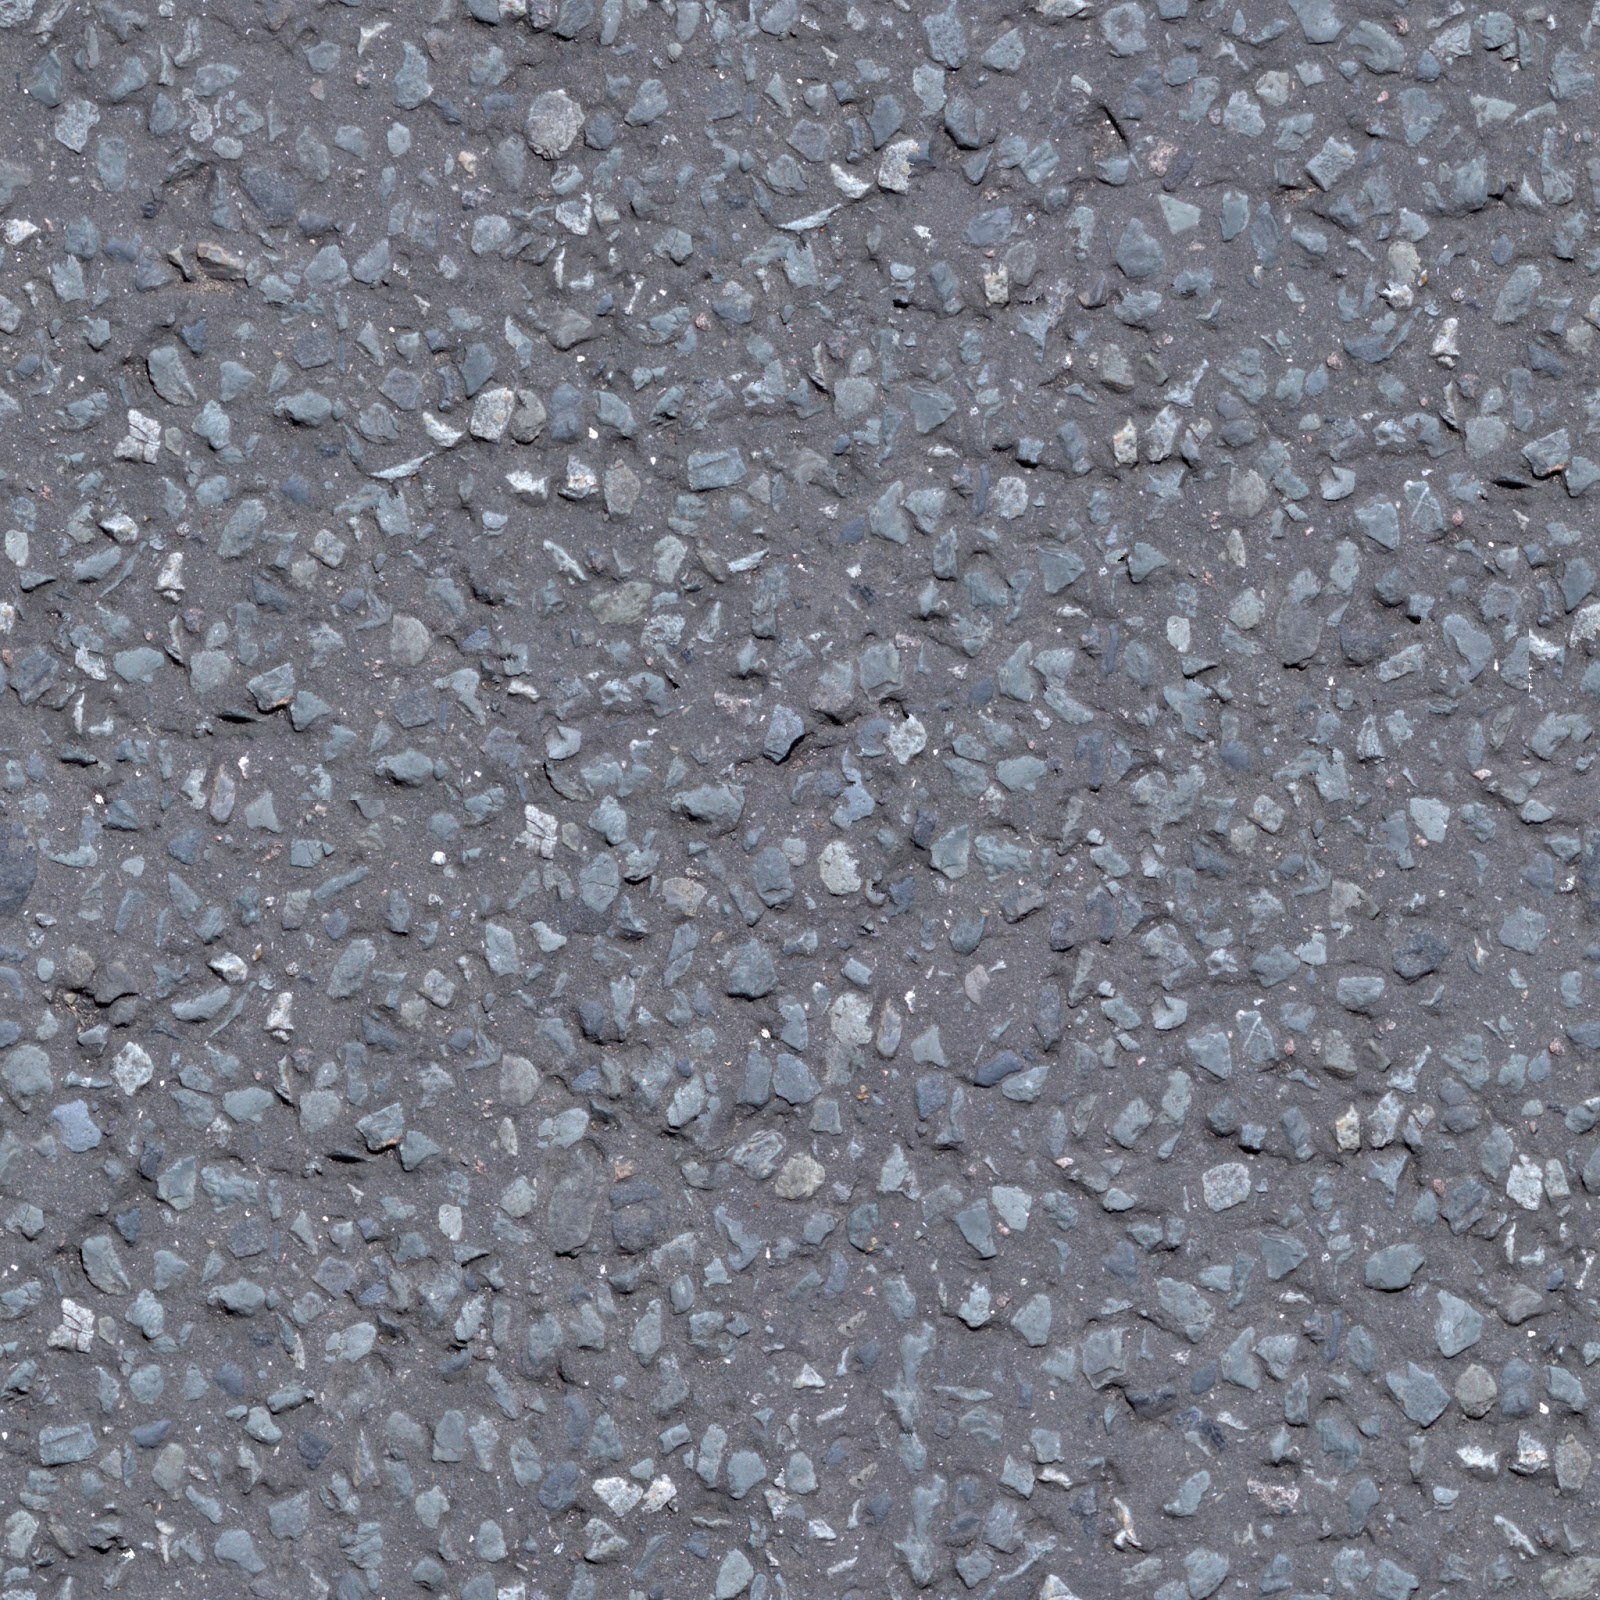 High Resolution Seamless Textures: Seamless dirt ground ...